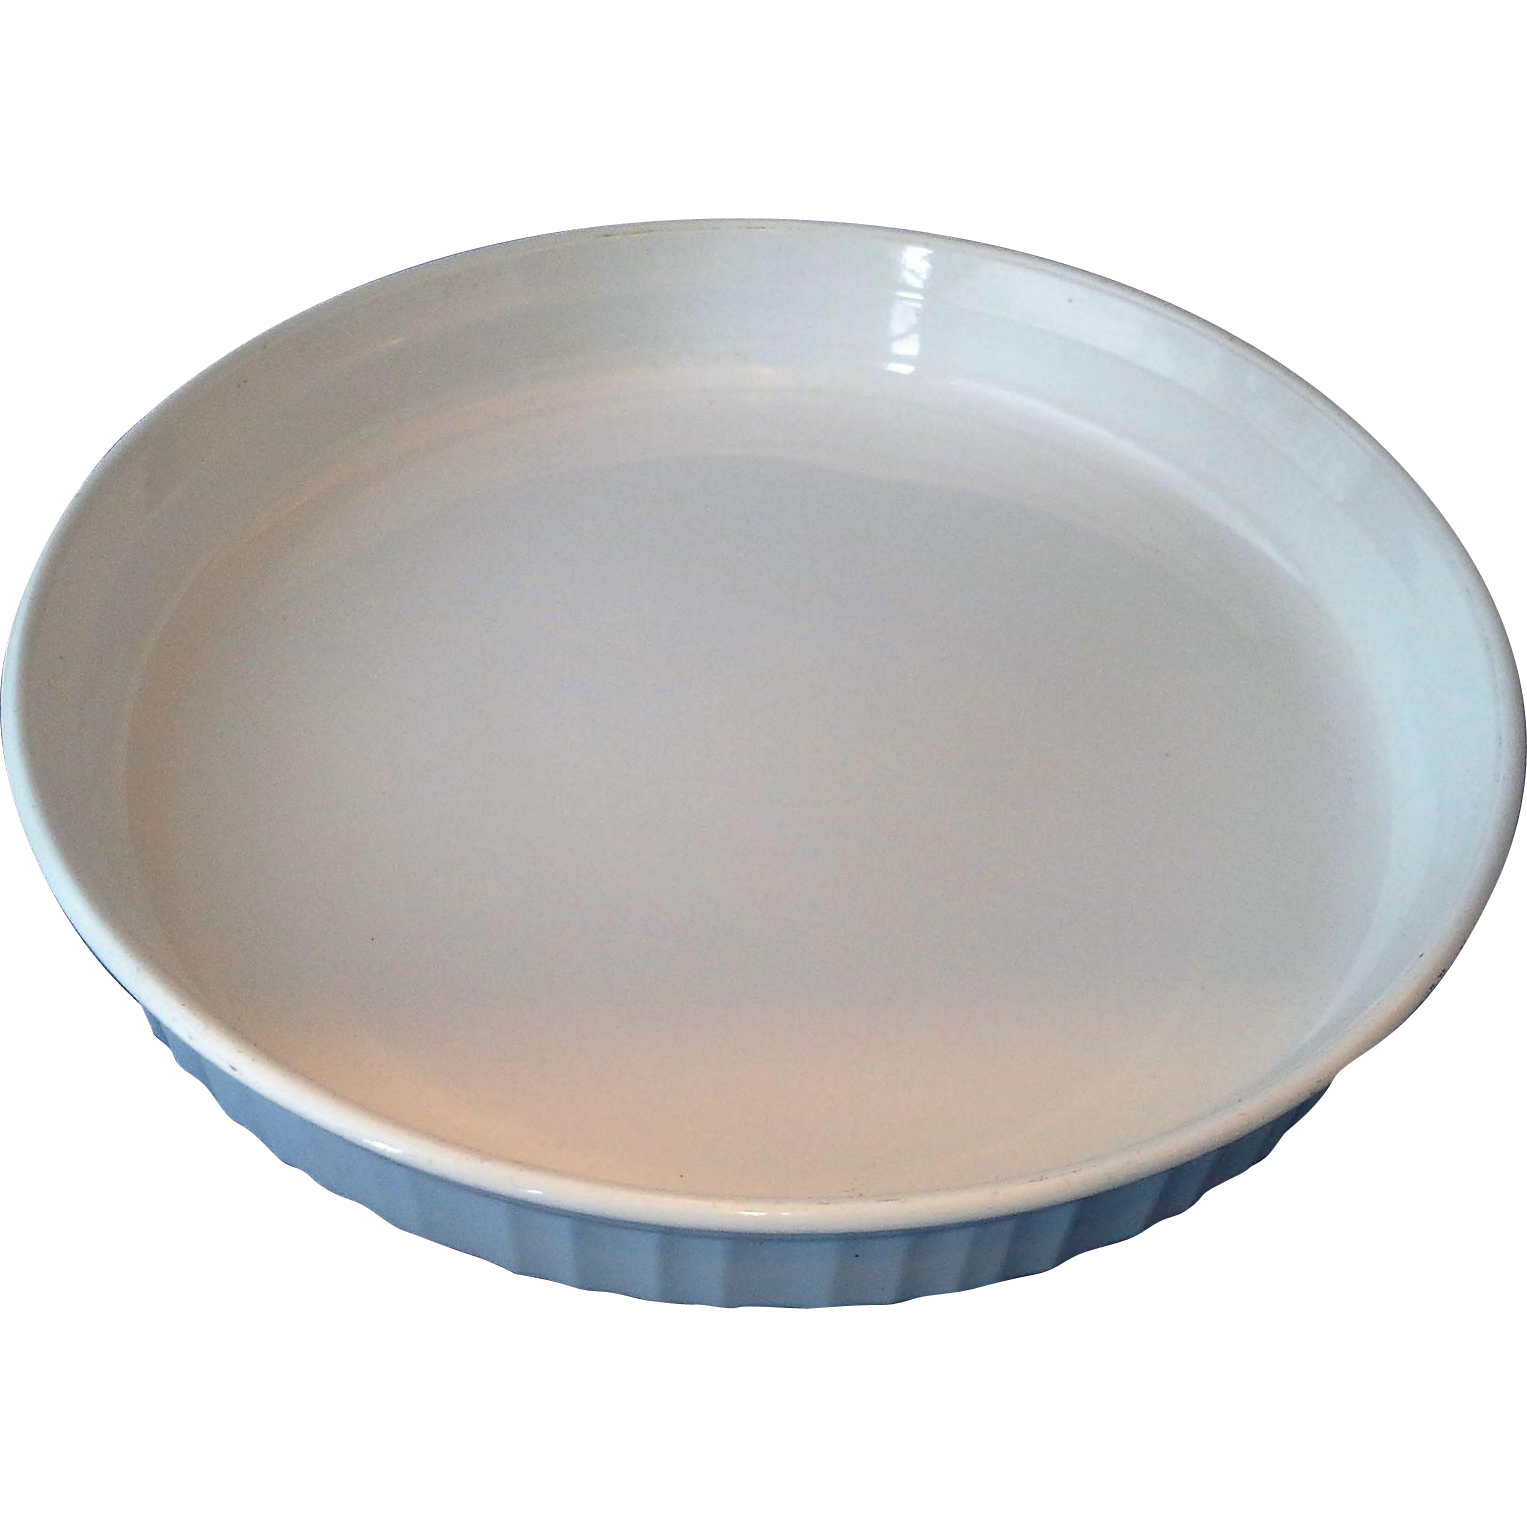 "Corning Ware F-3-B French White 10"" Quiche Tart Pan Round"